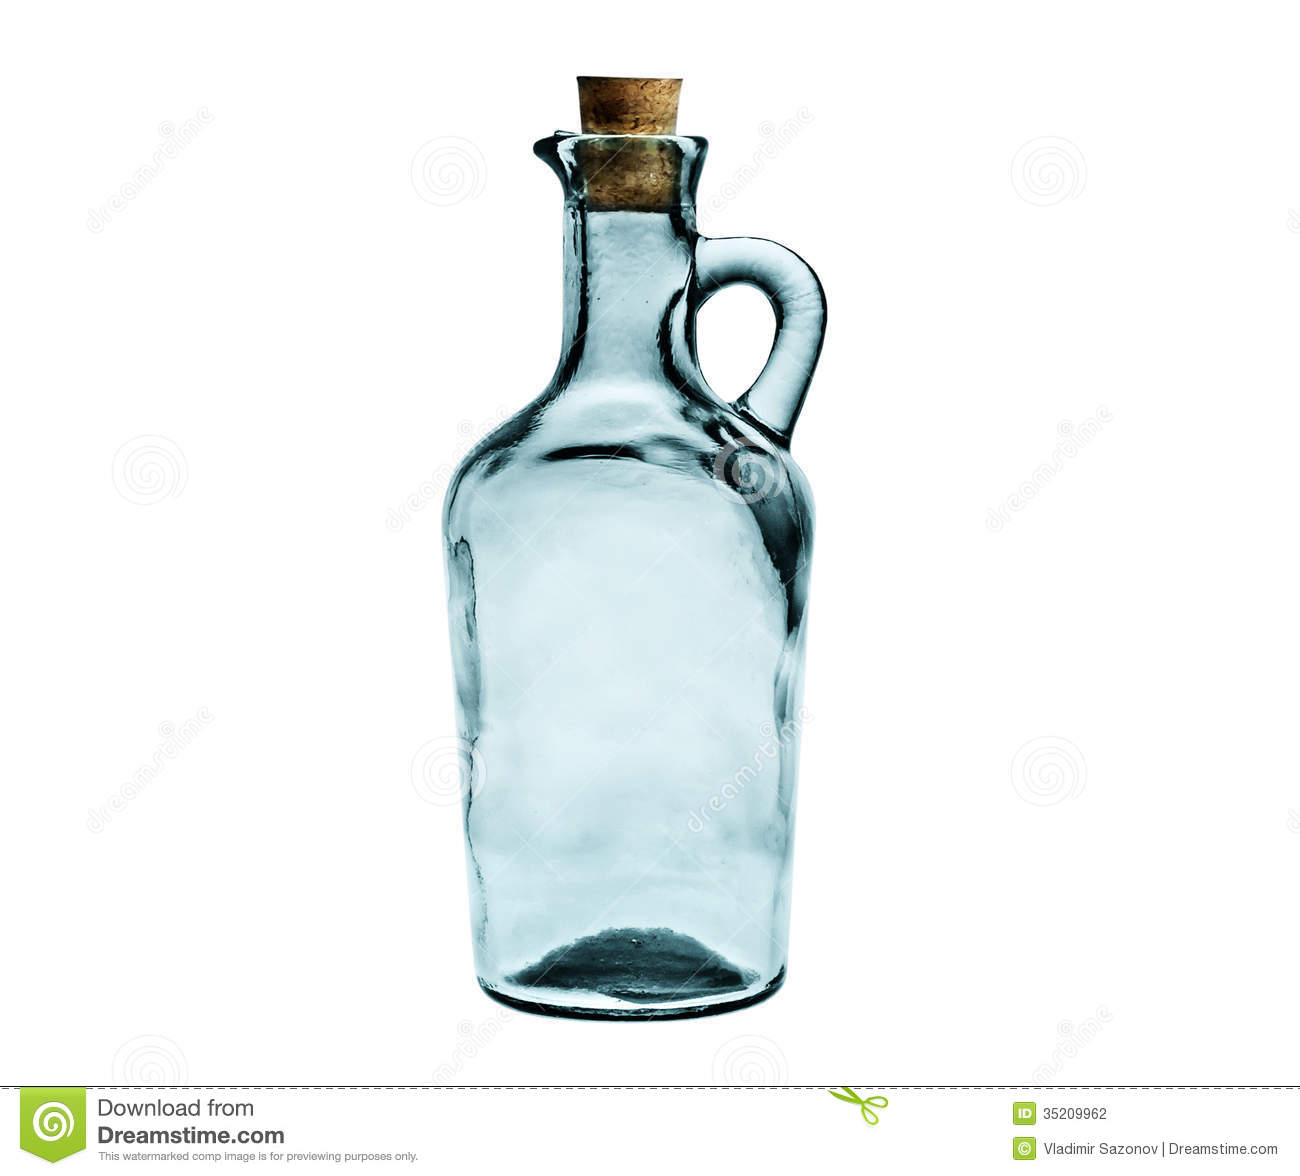 empty glass bottle with cork stopper isolated on white. Black Bedroom Furniture Sets. Home Design Ideas